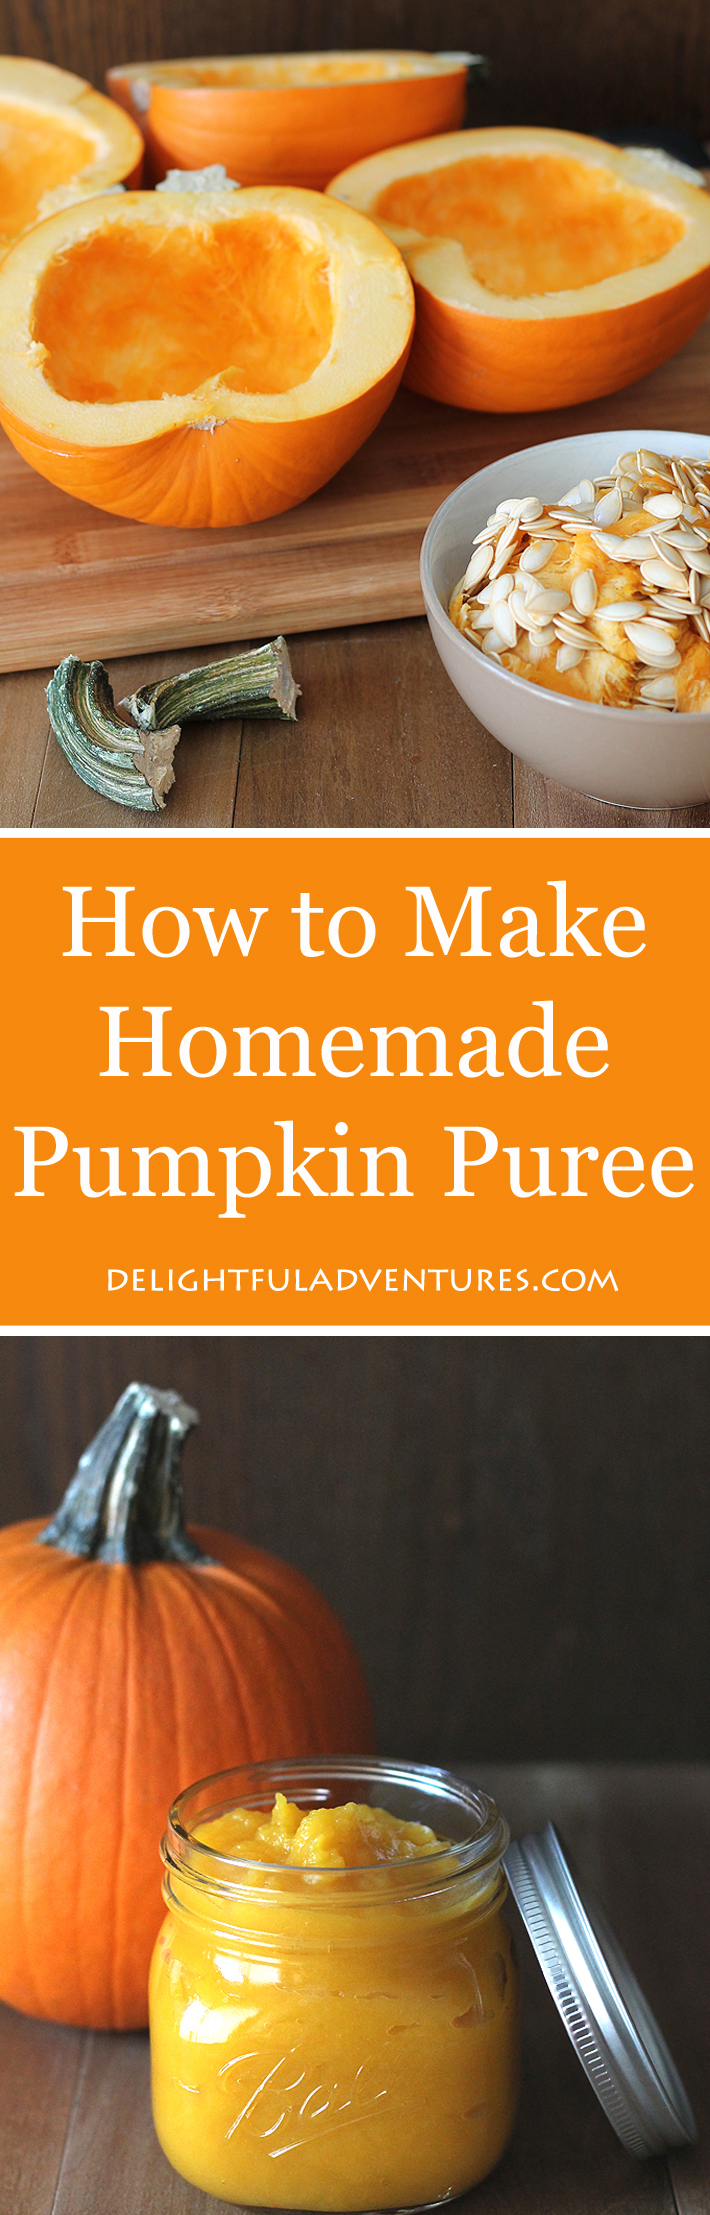 Get rid of the canned stuff and learn how to make homemade pumpkin puree! It's easy and your result will be fresh and ready for all your pumpkin recipes.